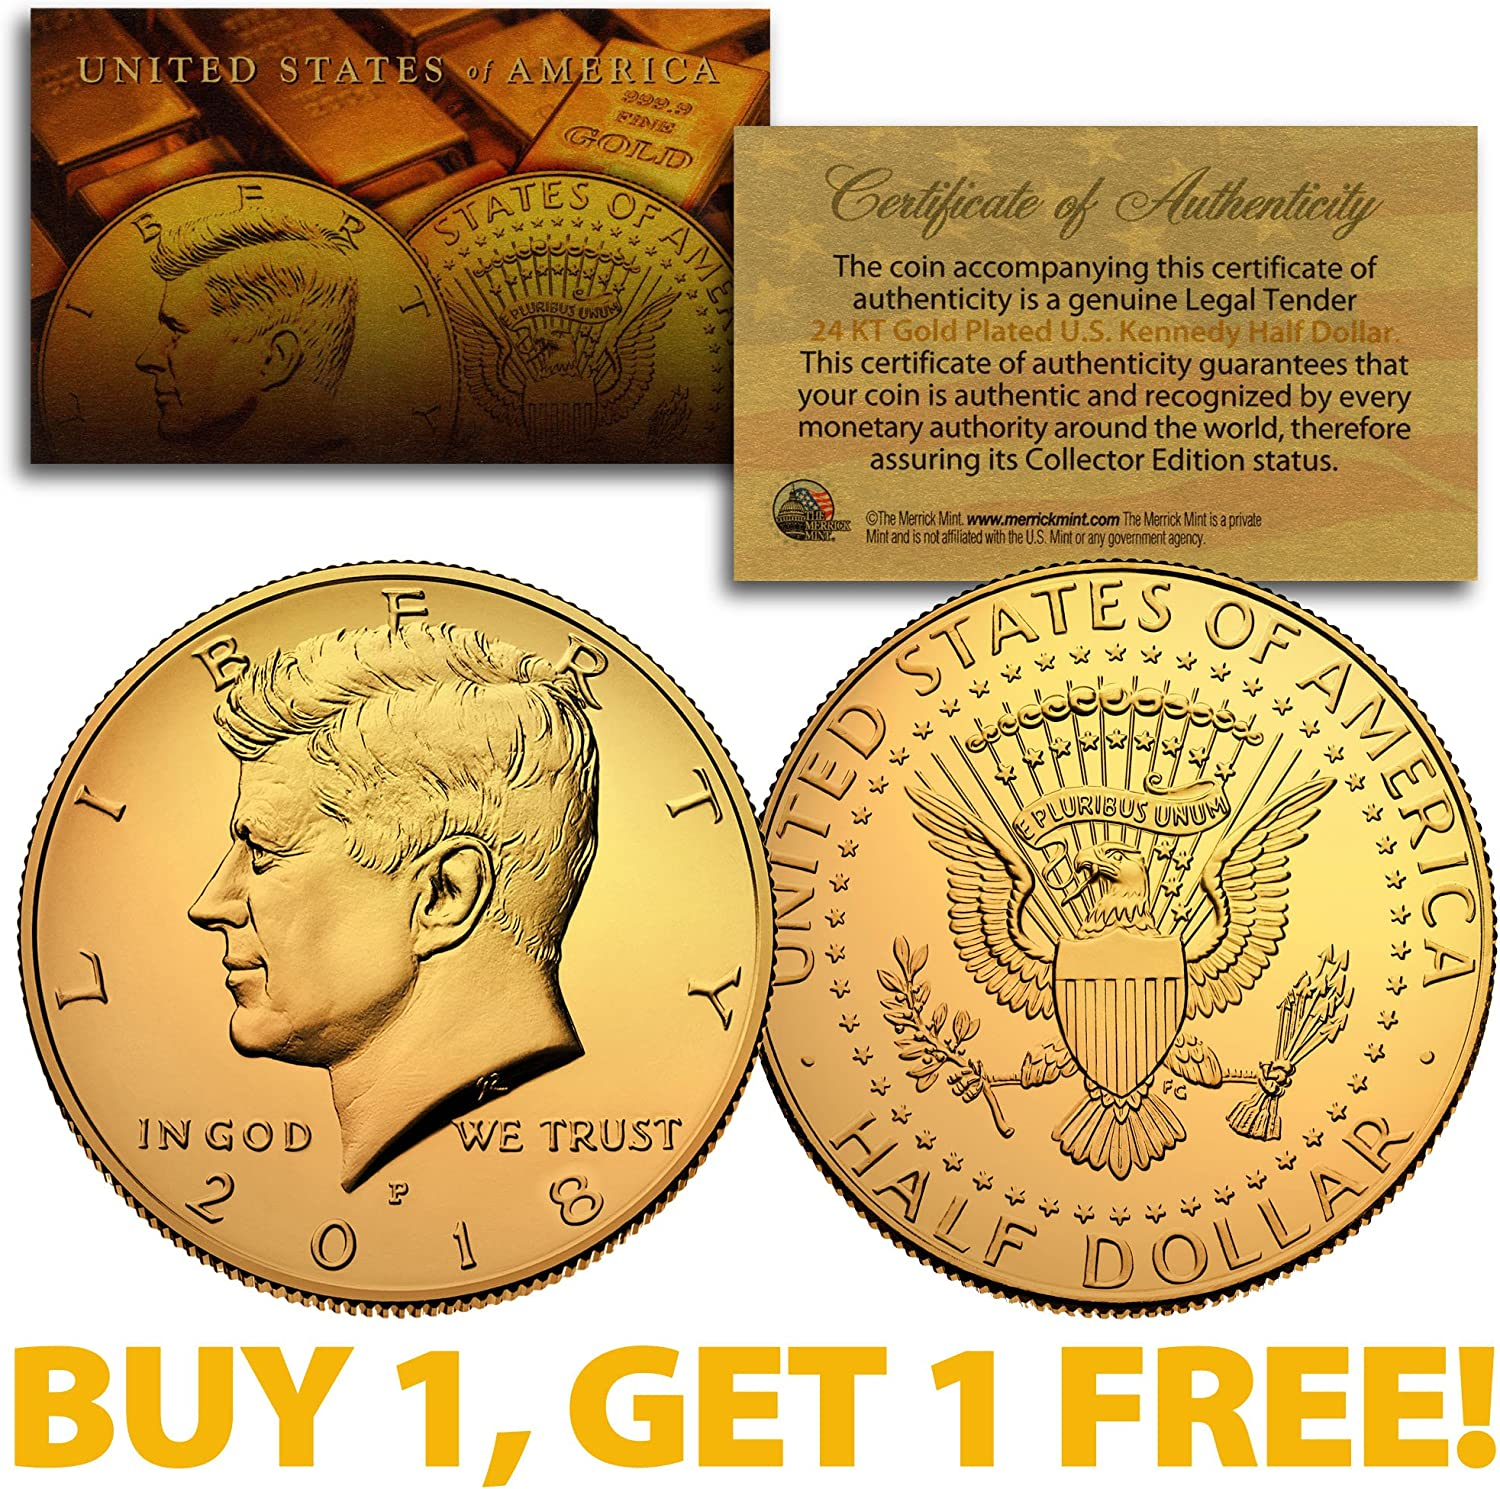 5 2017 DONALD TRUMP Dated OFFICIAL Inauguration 24K Gold Plated Tribute Coins